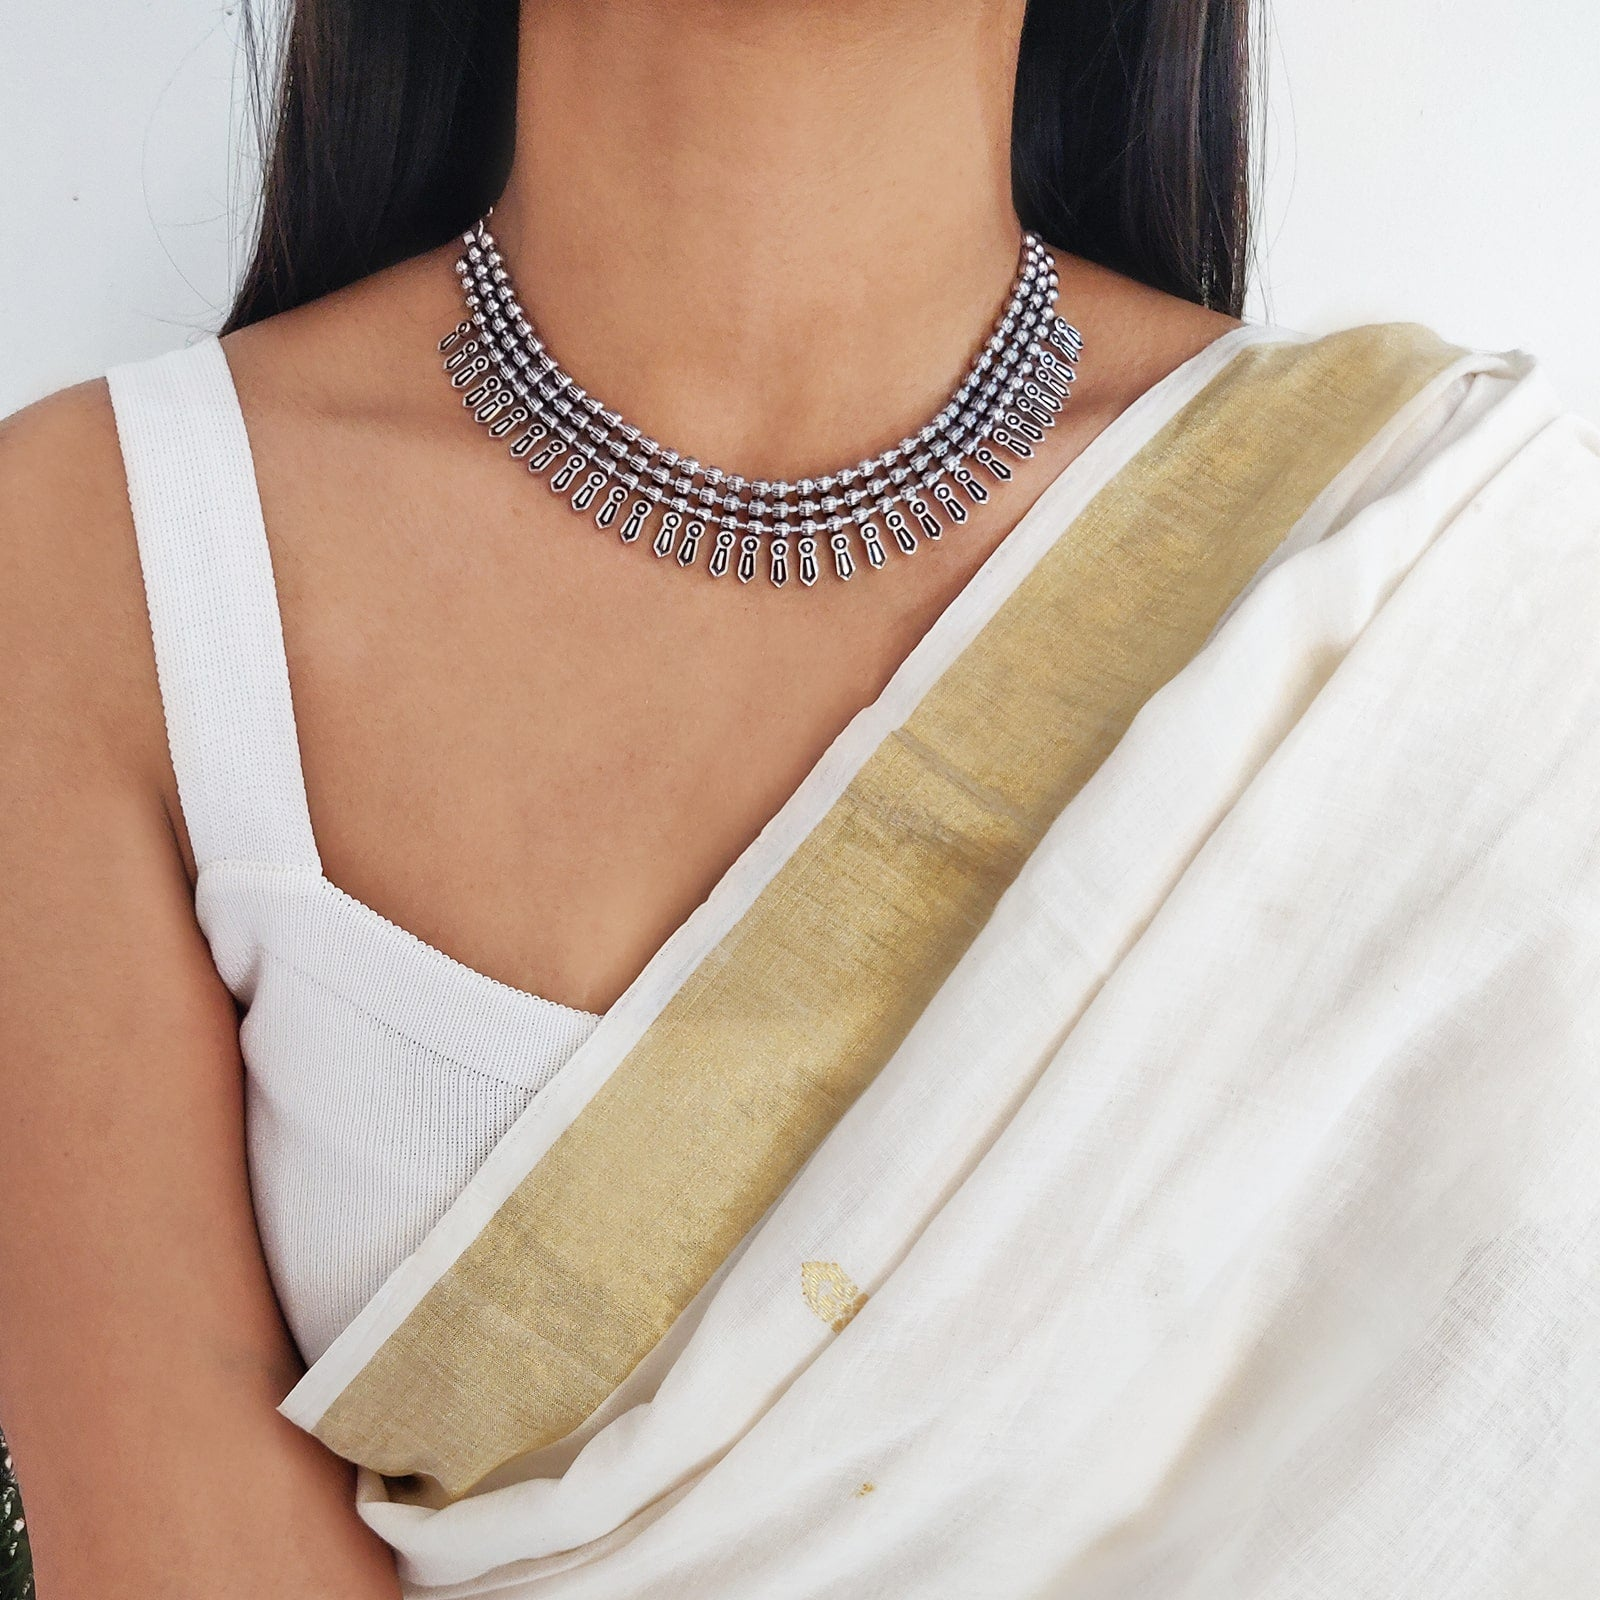 Mihika Silver Oxidized Necklace - Teejh